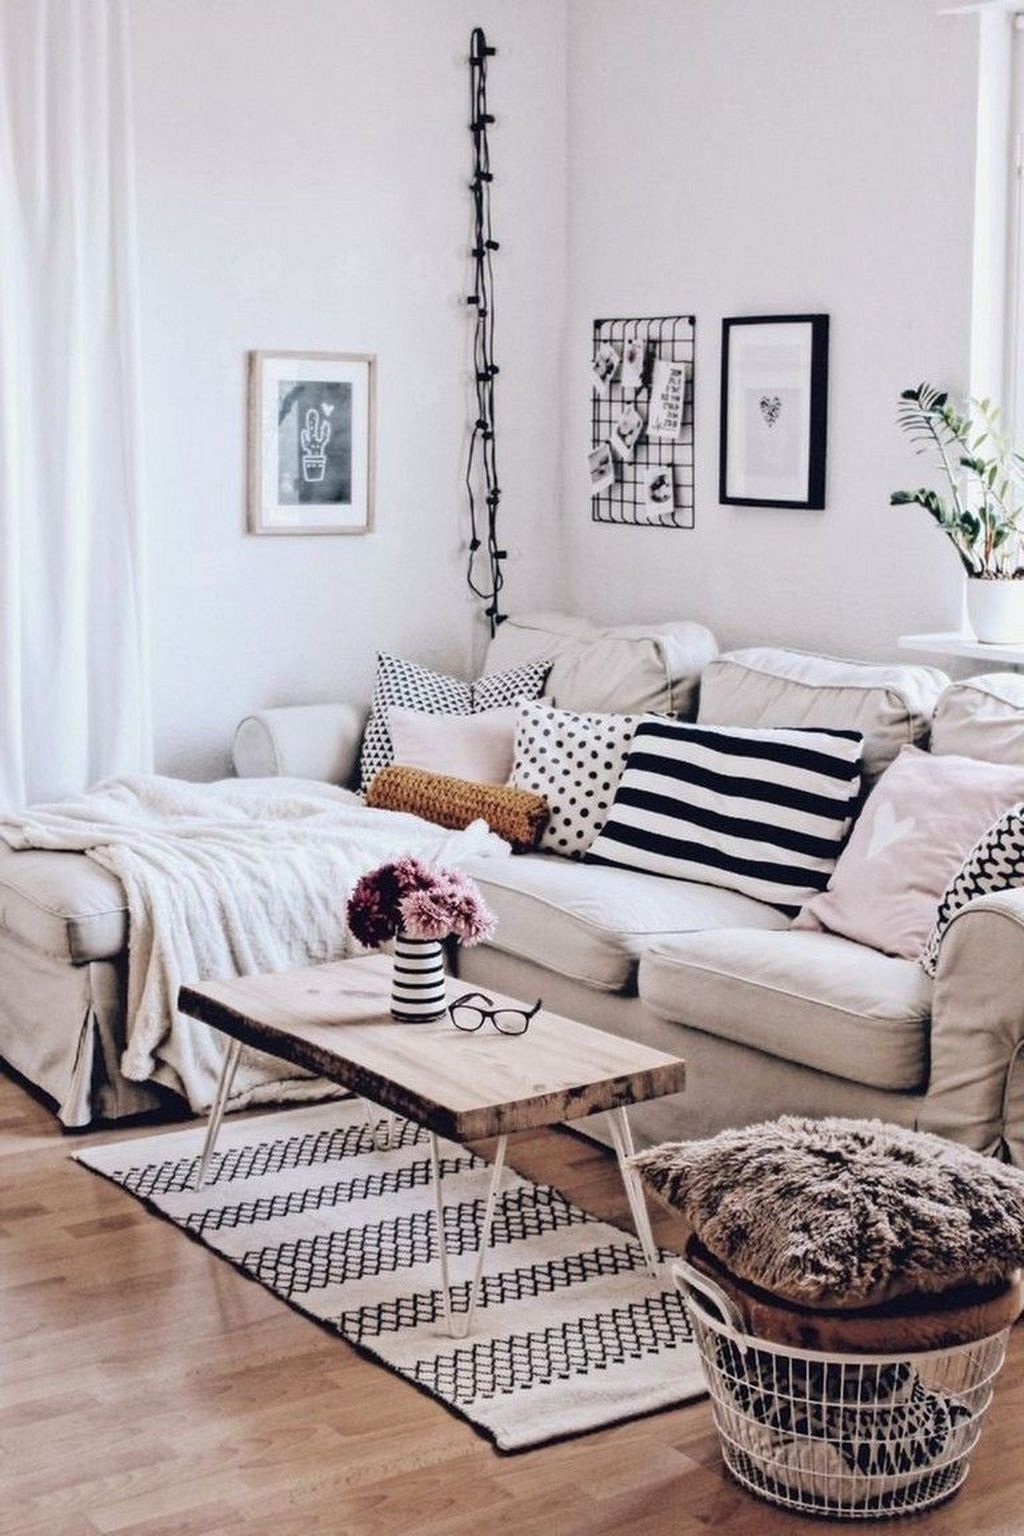 Scandinavian Living Room Design That A Lot Of People Talk About 26